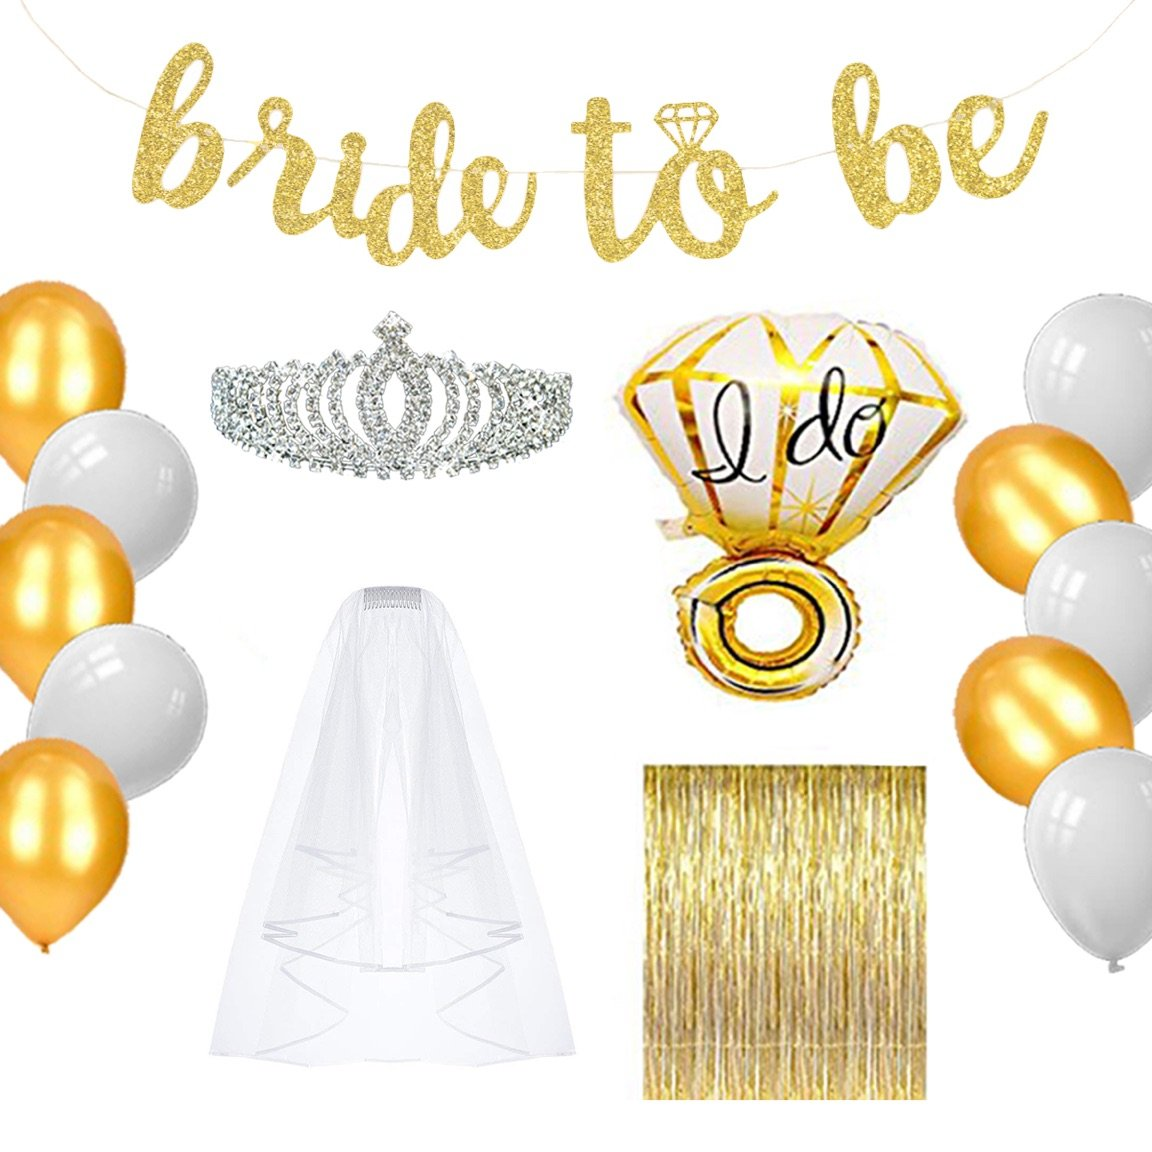 Bachelorette Party Decorations & Supplies - Gold Bridal Shower Favors Kit (Engagement Accessories & Decor Pack - Bride Banner, Sash, Balloons, Veil, Foil Fringe Curtain, Rhinestone Tiara)